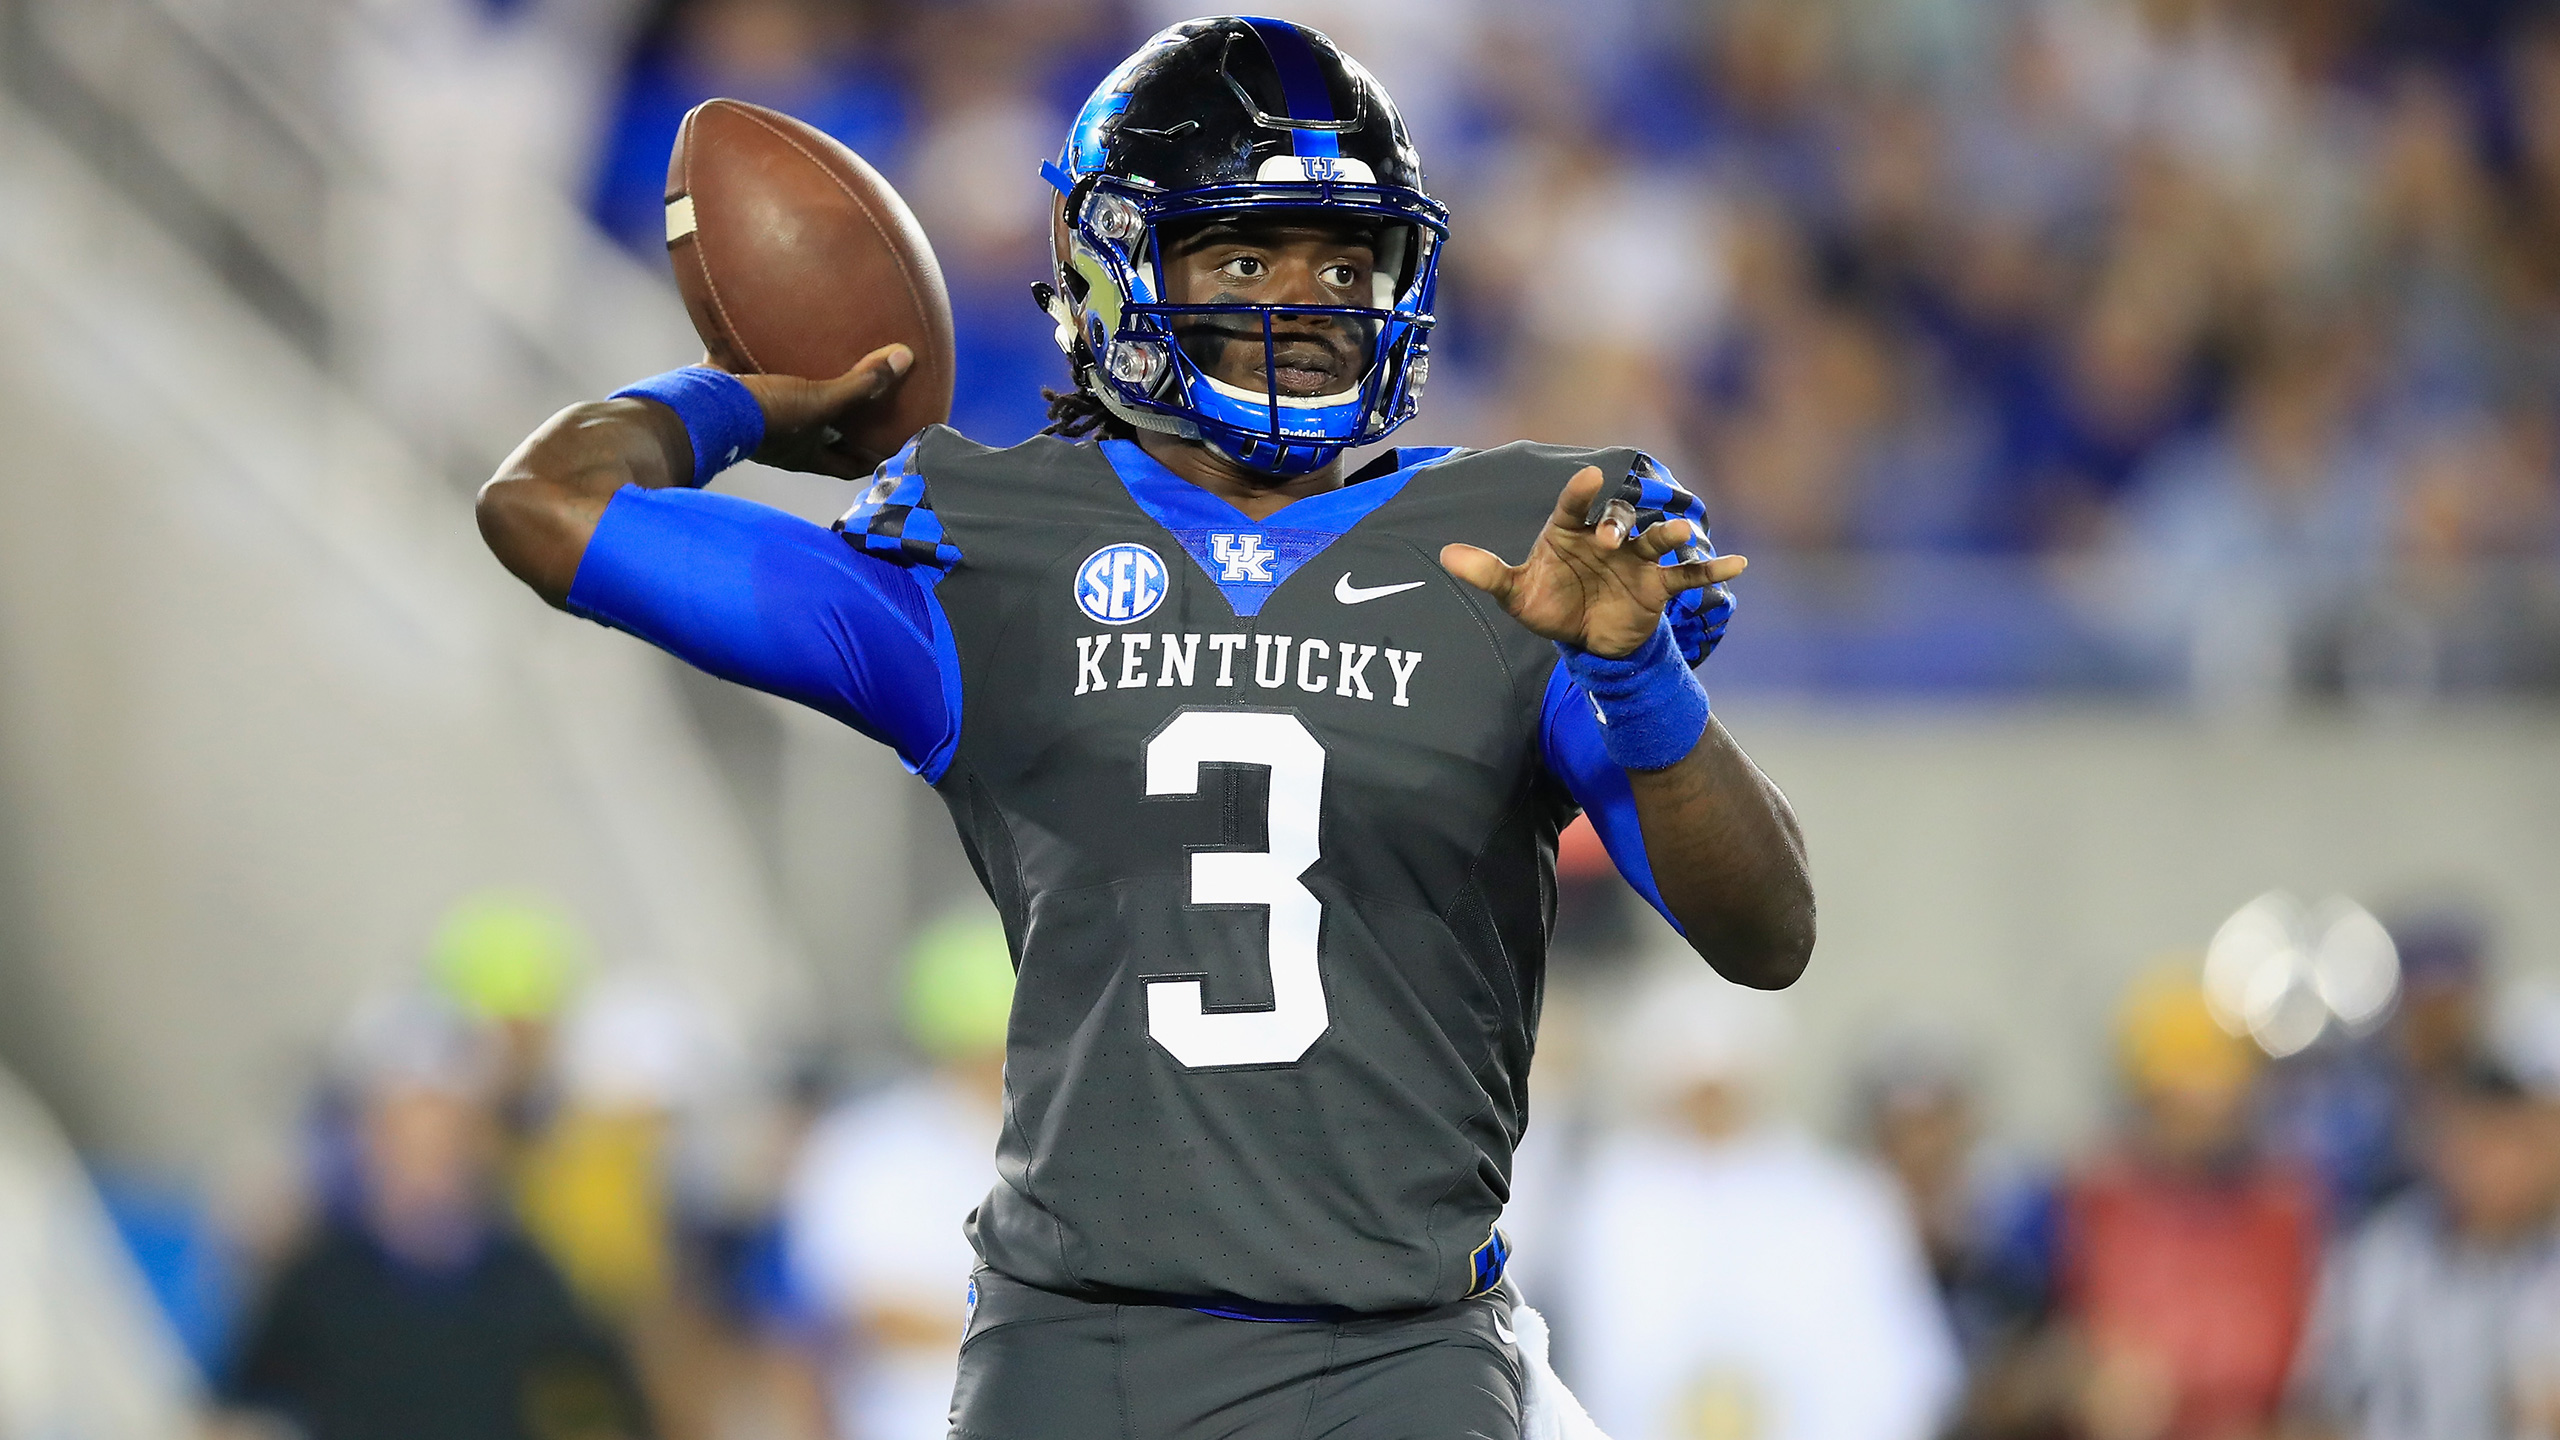 Vanderbilt vs. #14 Kentucky (re-air)